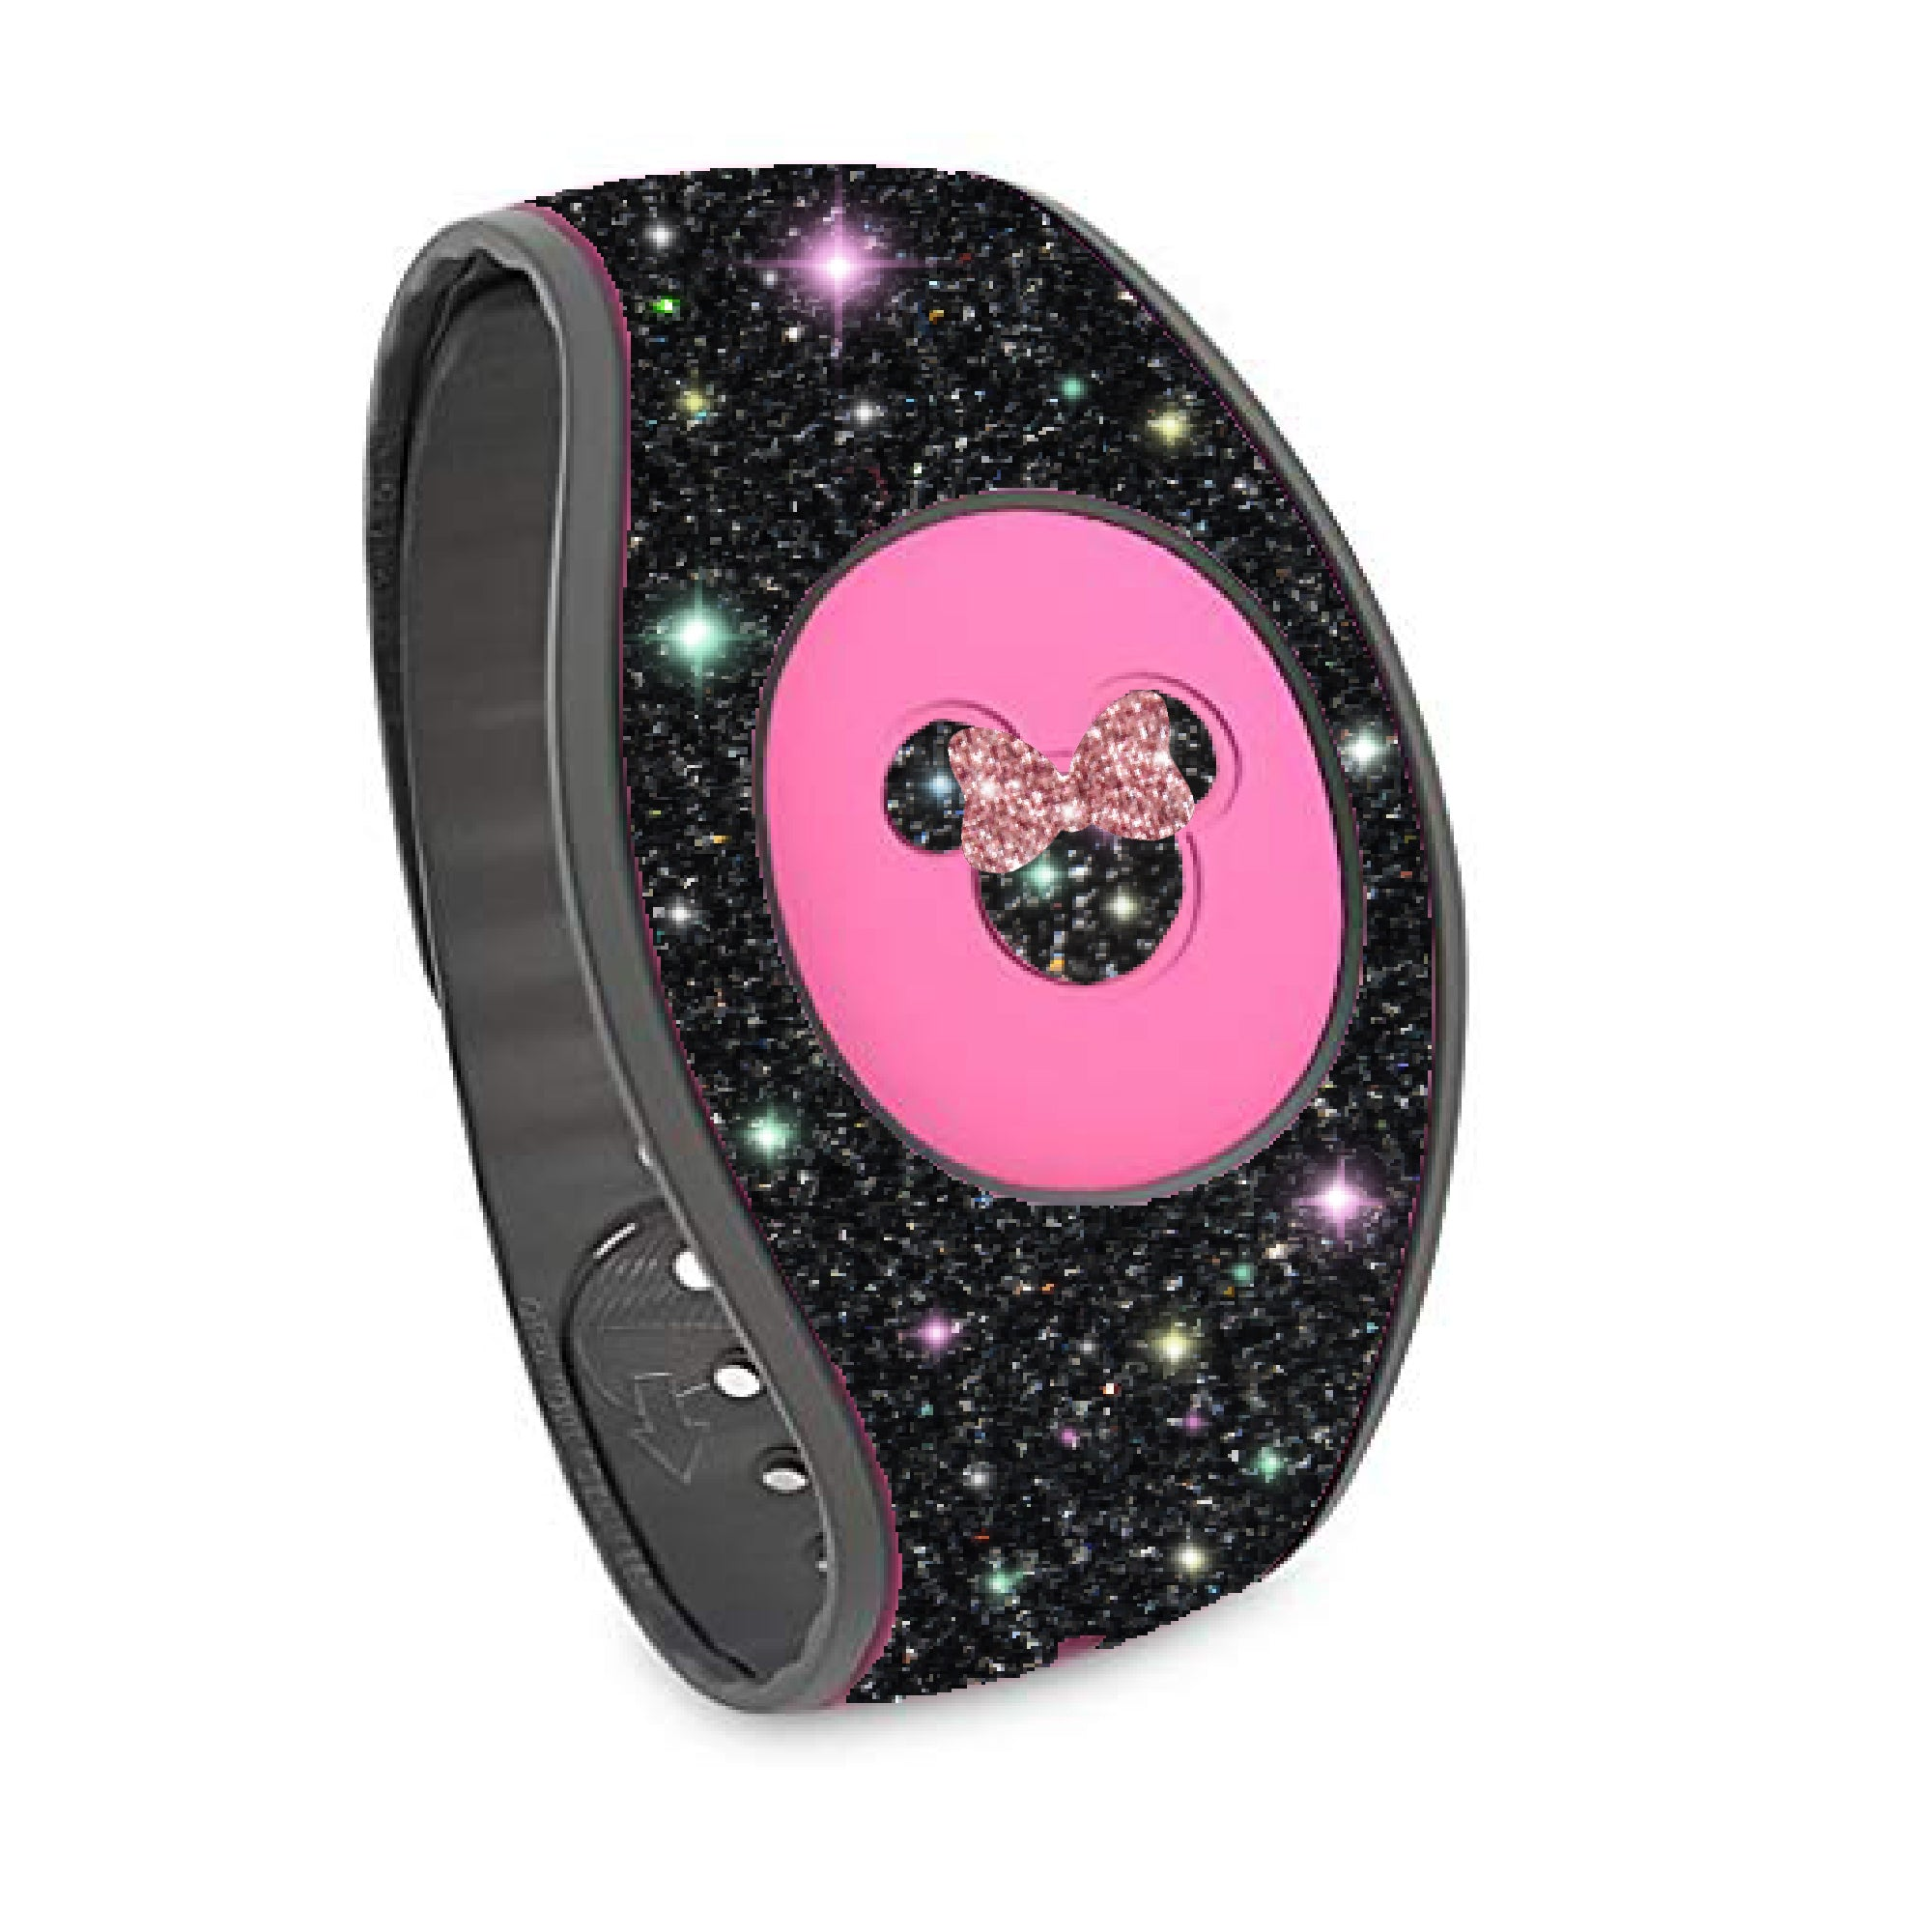 wraps for magic band Magic Band skins cover holographic purple glitter Magic band 2.0 decal skins stickers scratch resistant decals wrap